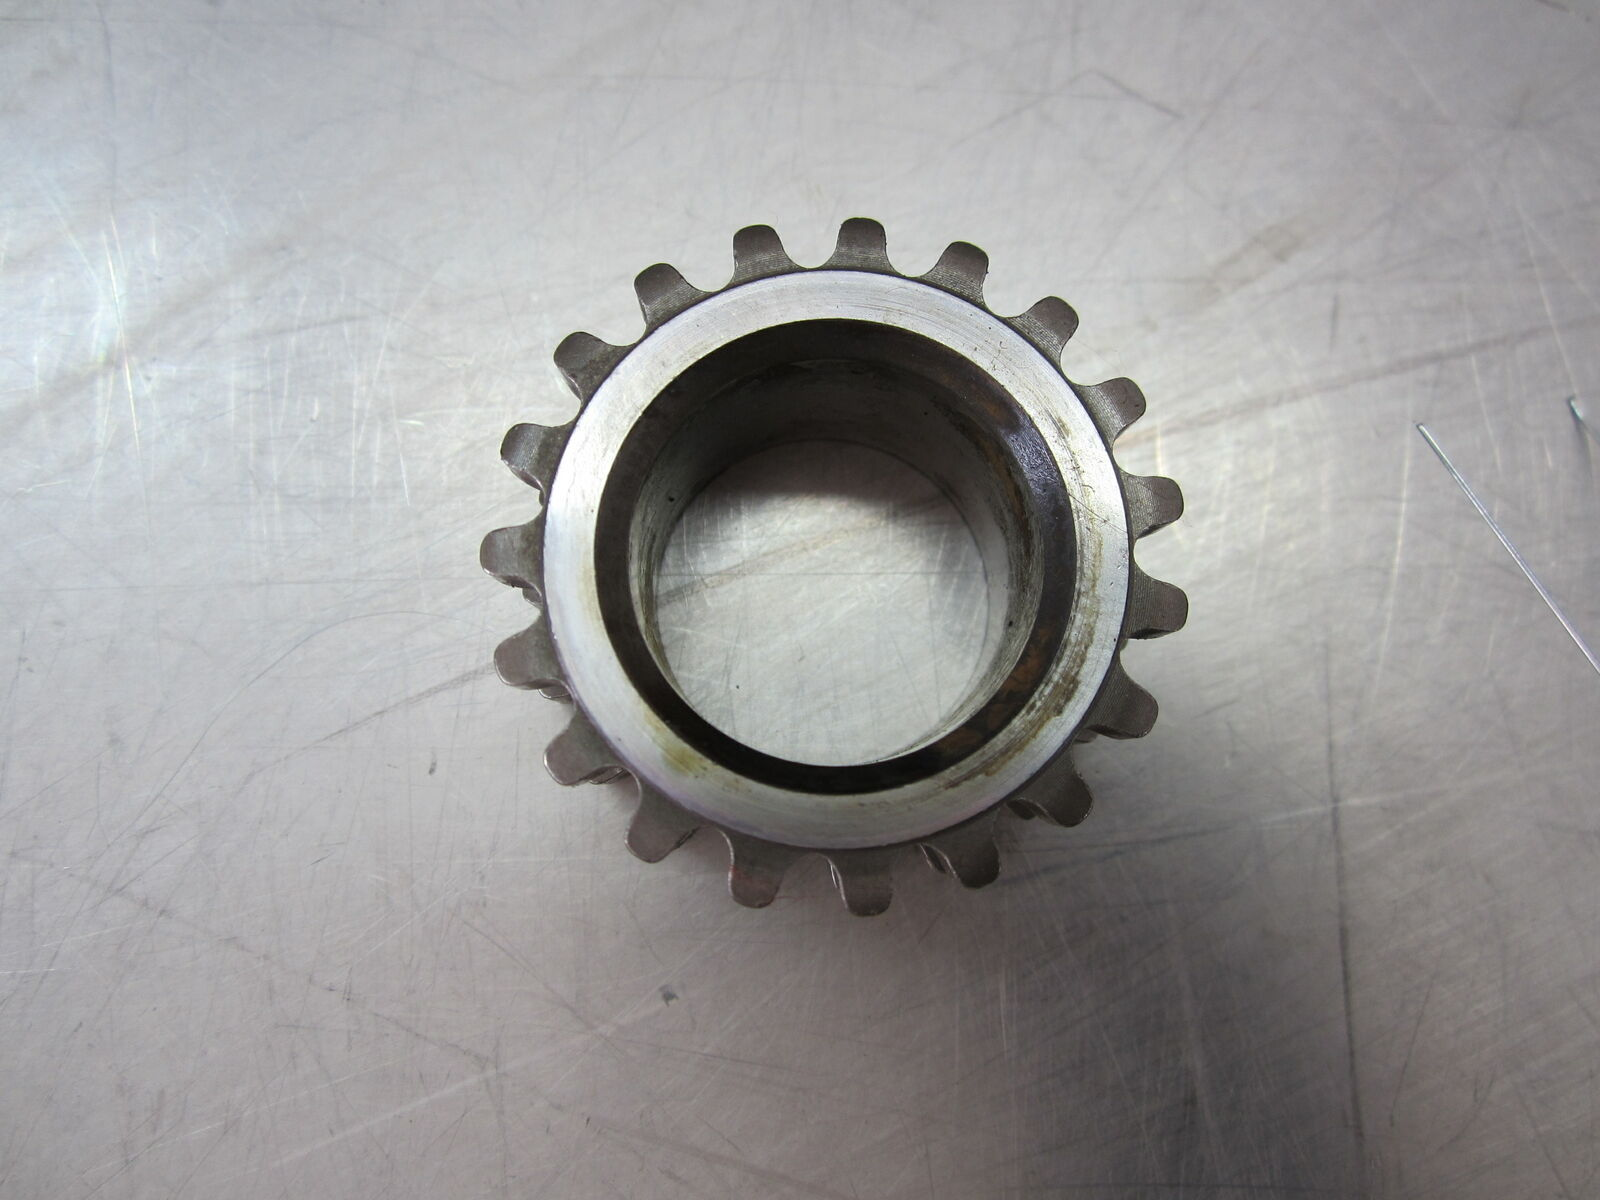 59Y111 CRANKSHAFT TIMING GEAR 2012 FORD FOCUS 2.0  image 2